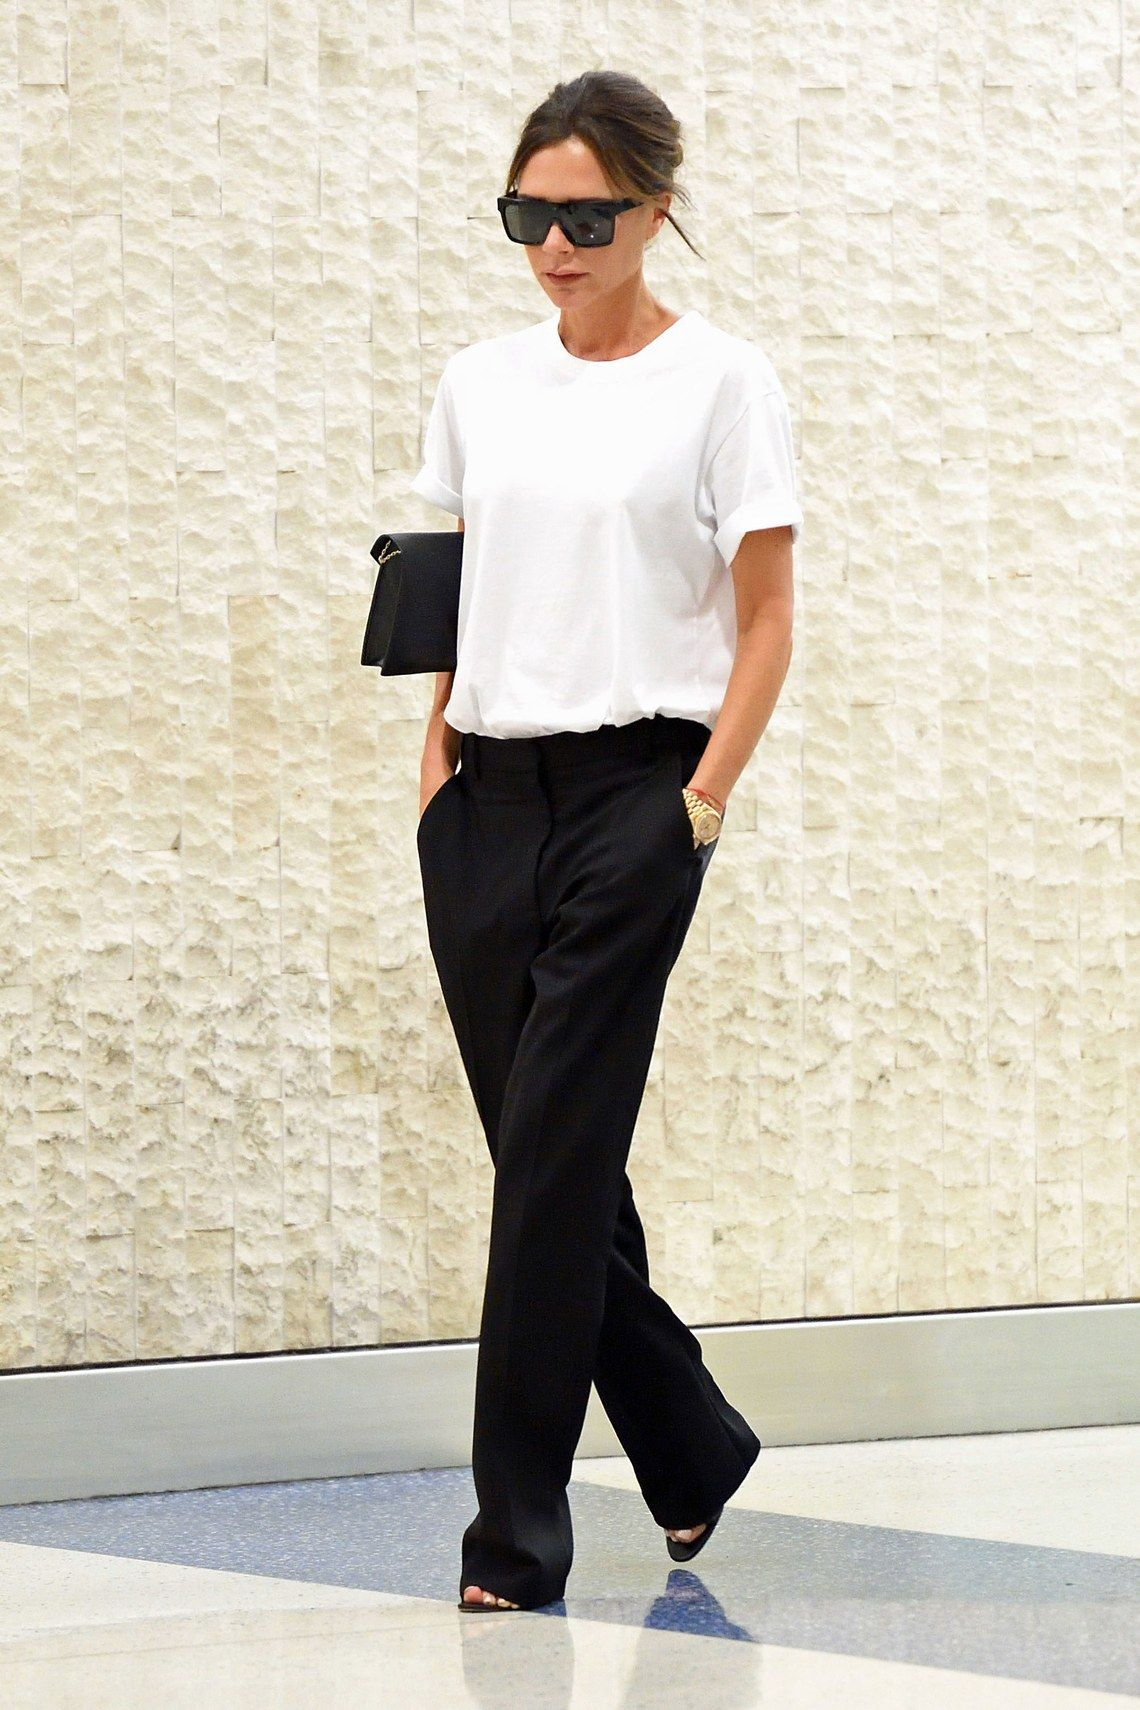 3be7615cc68d Victoria Beckham's Airport Style Ahead of Her Spring 2018 Show in ...